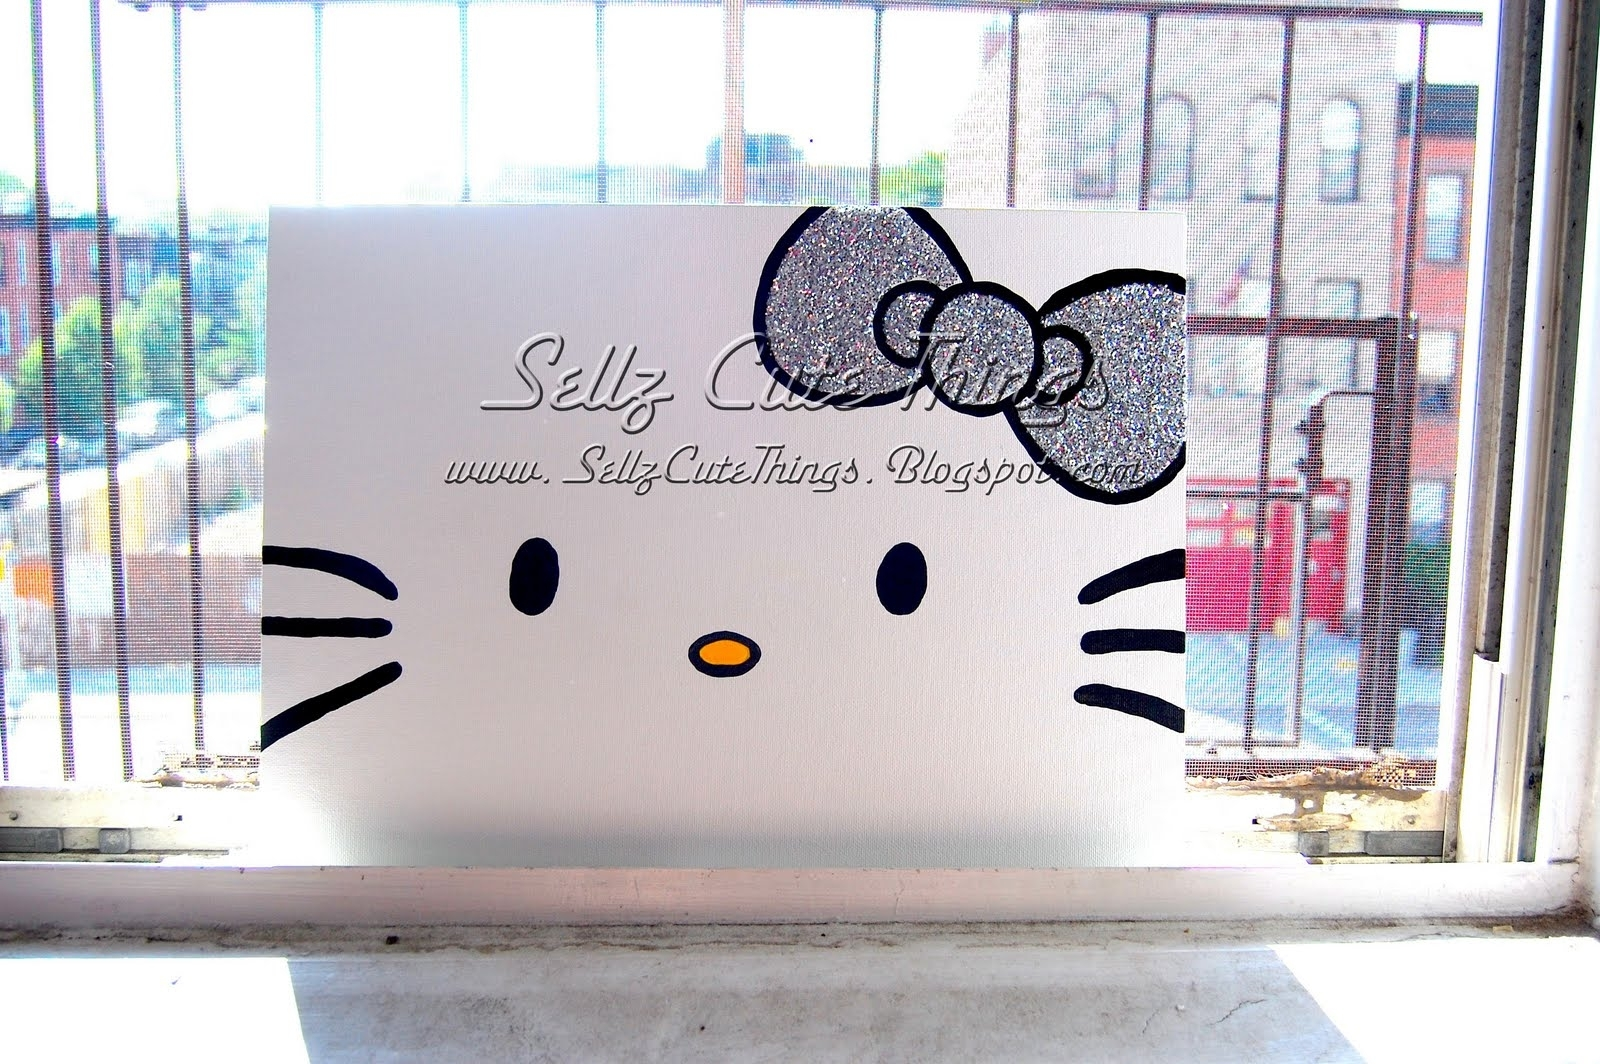 Sellzcutethings: Hello Kitty Acrylic Painting On Canvas Intended For 2018 Hello Kitty Canvas Wall Art (Gallery 1 of 15)